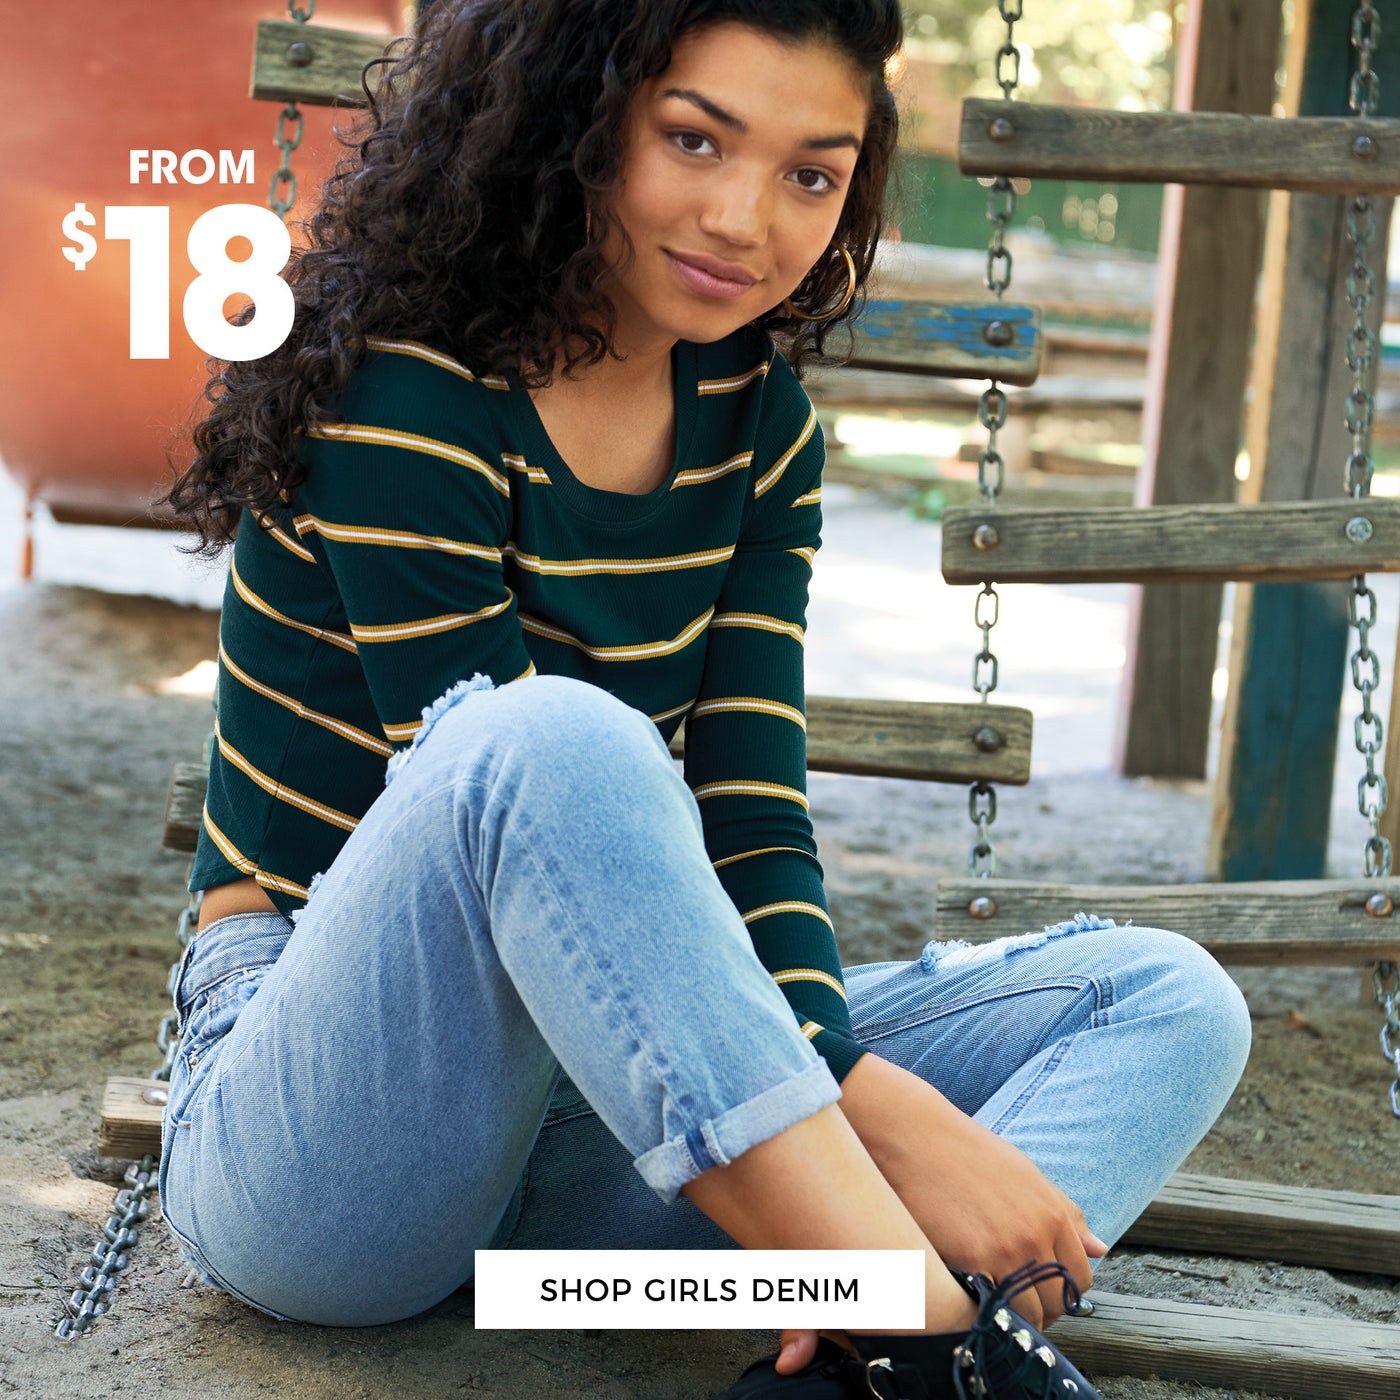 Denim from $18 - Shop Girls Denim